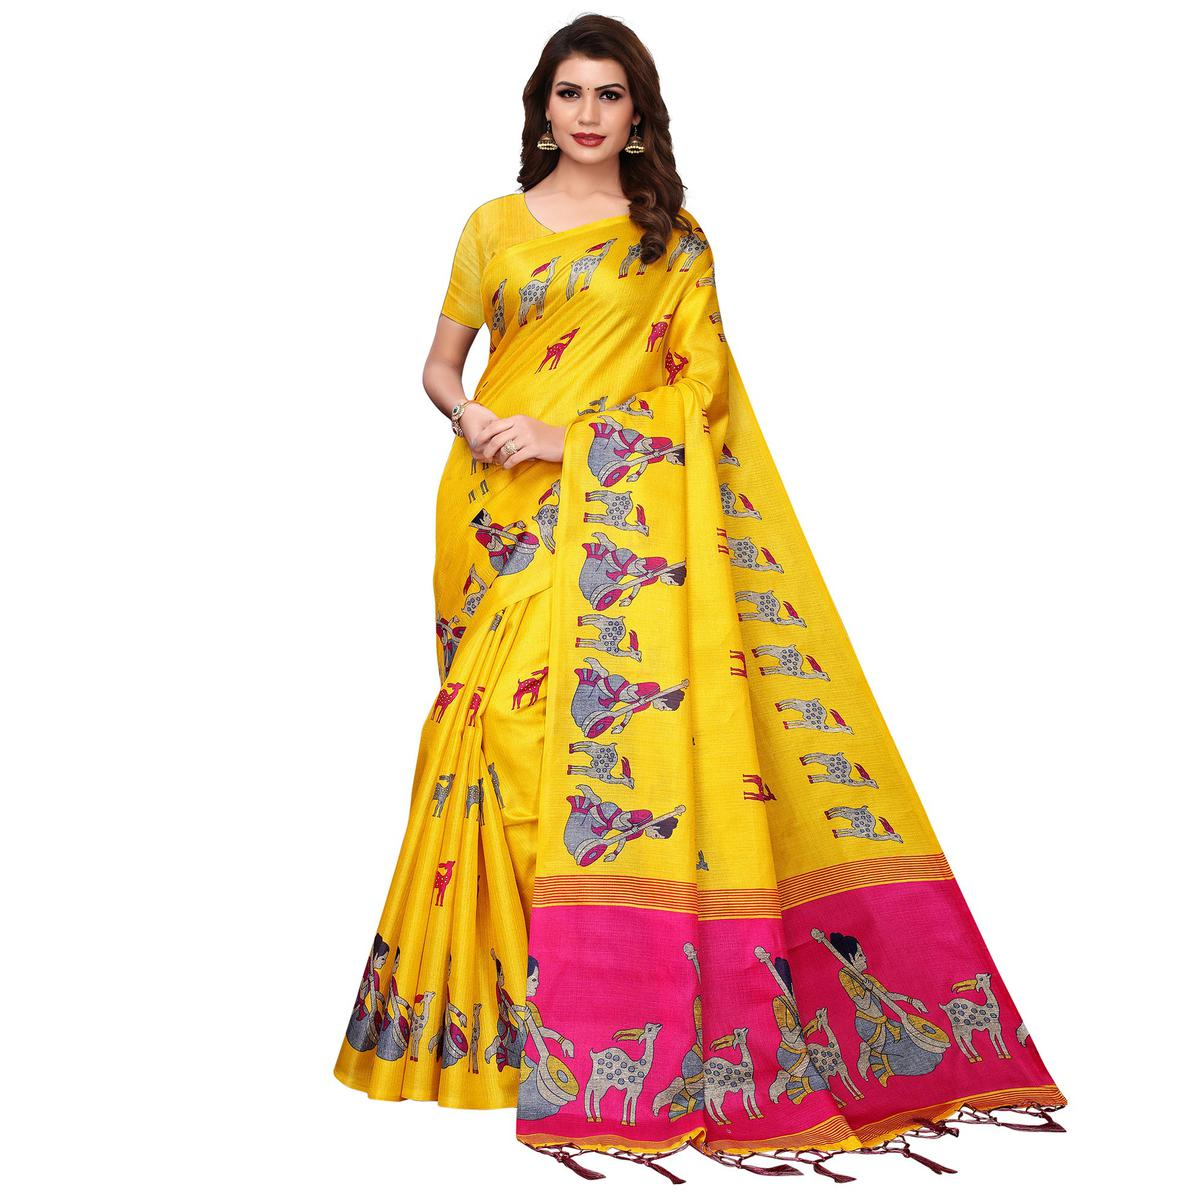 Majesty Yellow Colored Festive Wear Printed Art Silk Saree